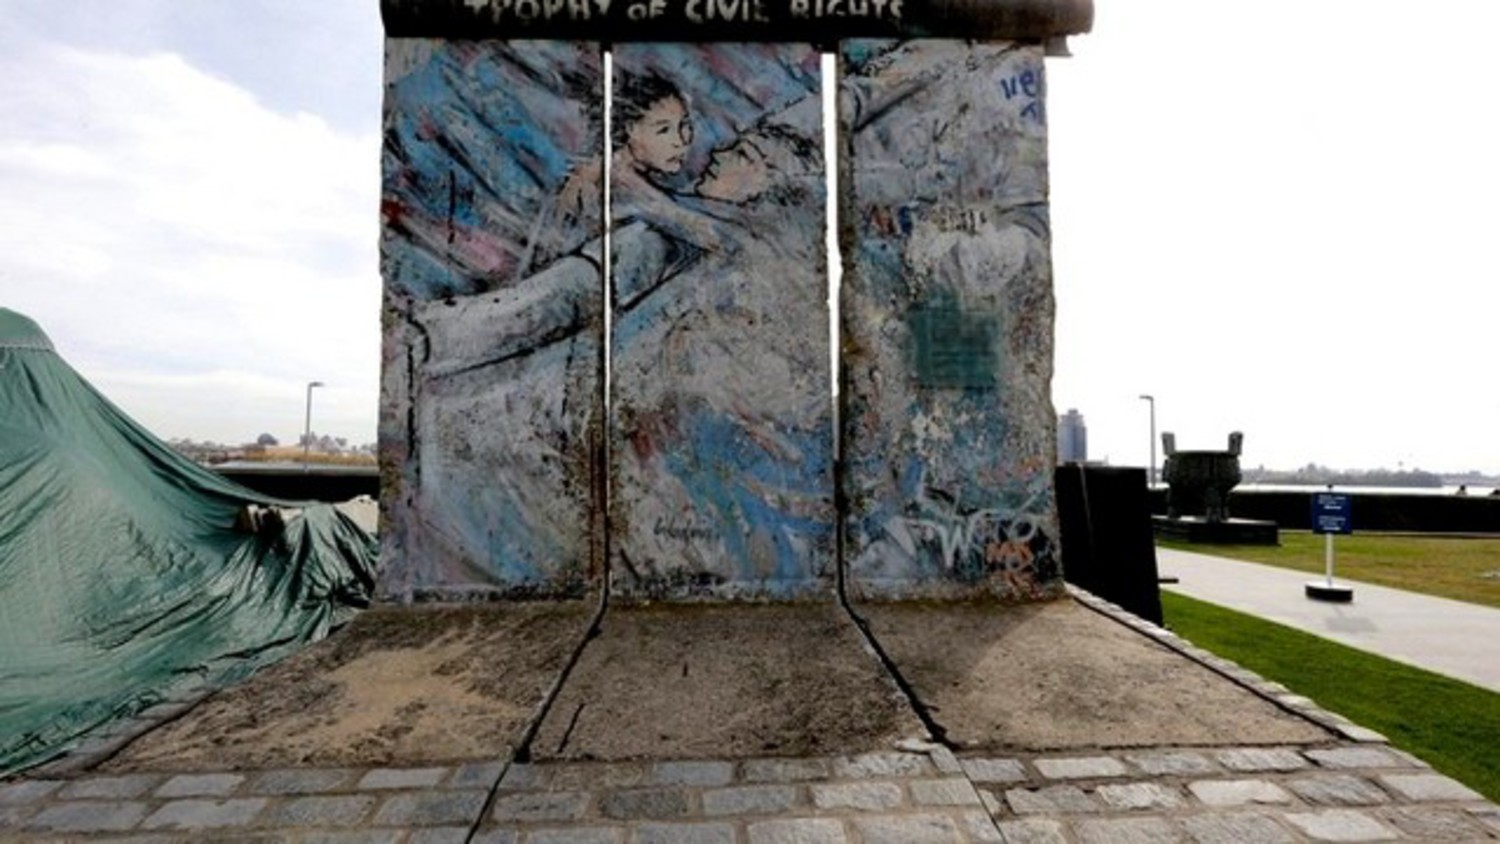 The United Nations Berlin Wall